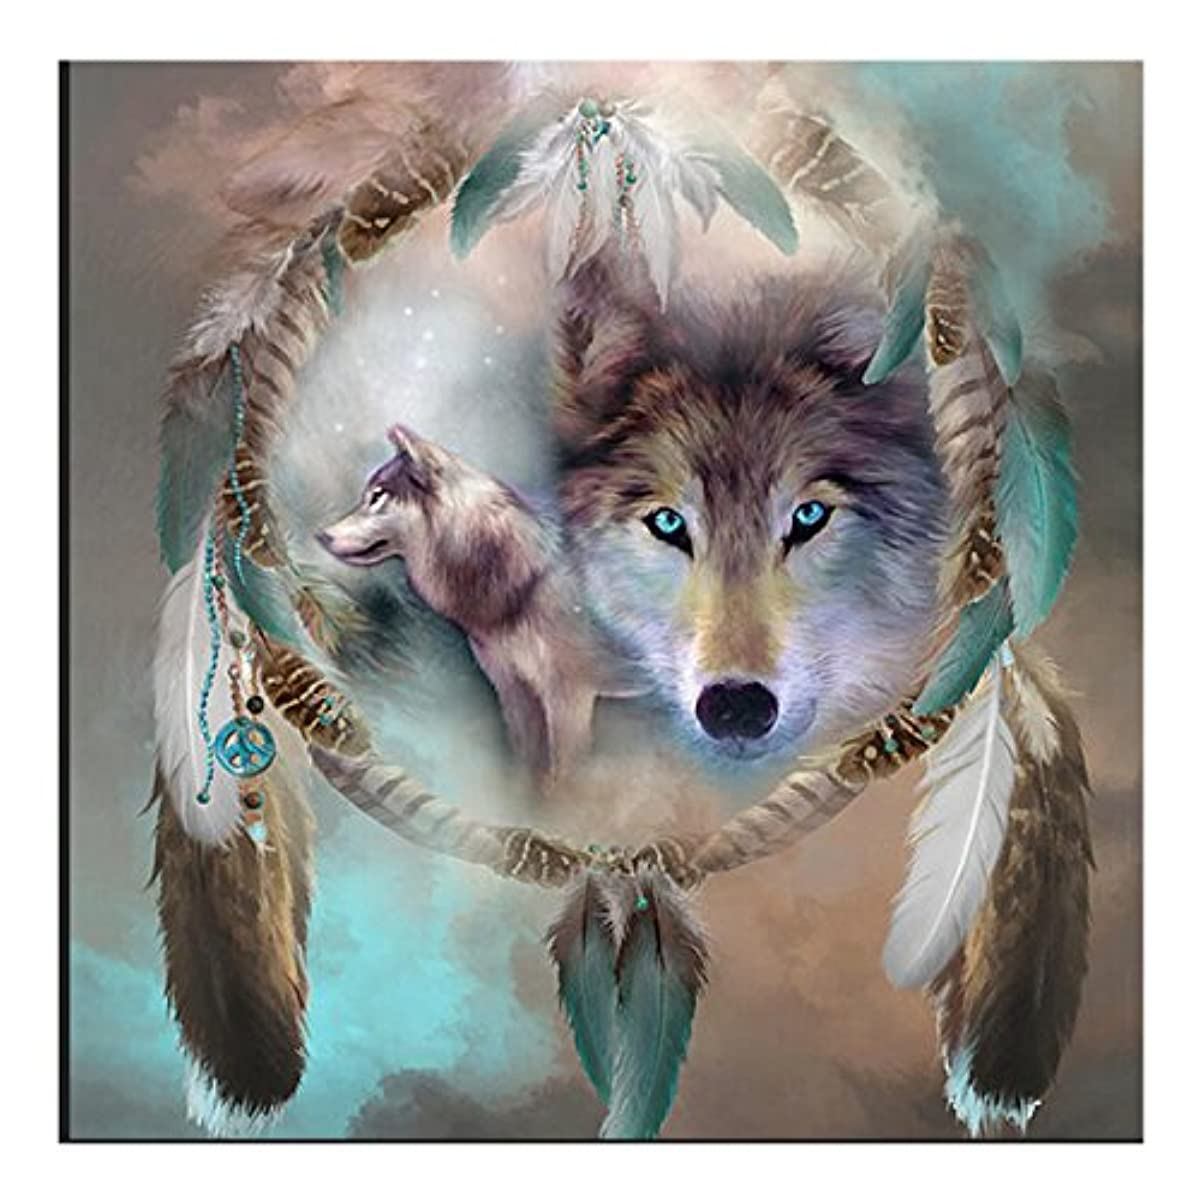 eZAKKA DIY 5D Diamond Painting by Number Kits, 20x20CM/9x9 Inches Wolf Dreamcatcher Diamond Art Kits Crystal Rhinestone Embroidery Pictures Full Square Drill for Adults Home Wall Decor